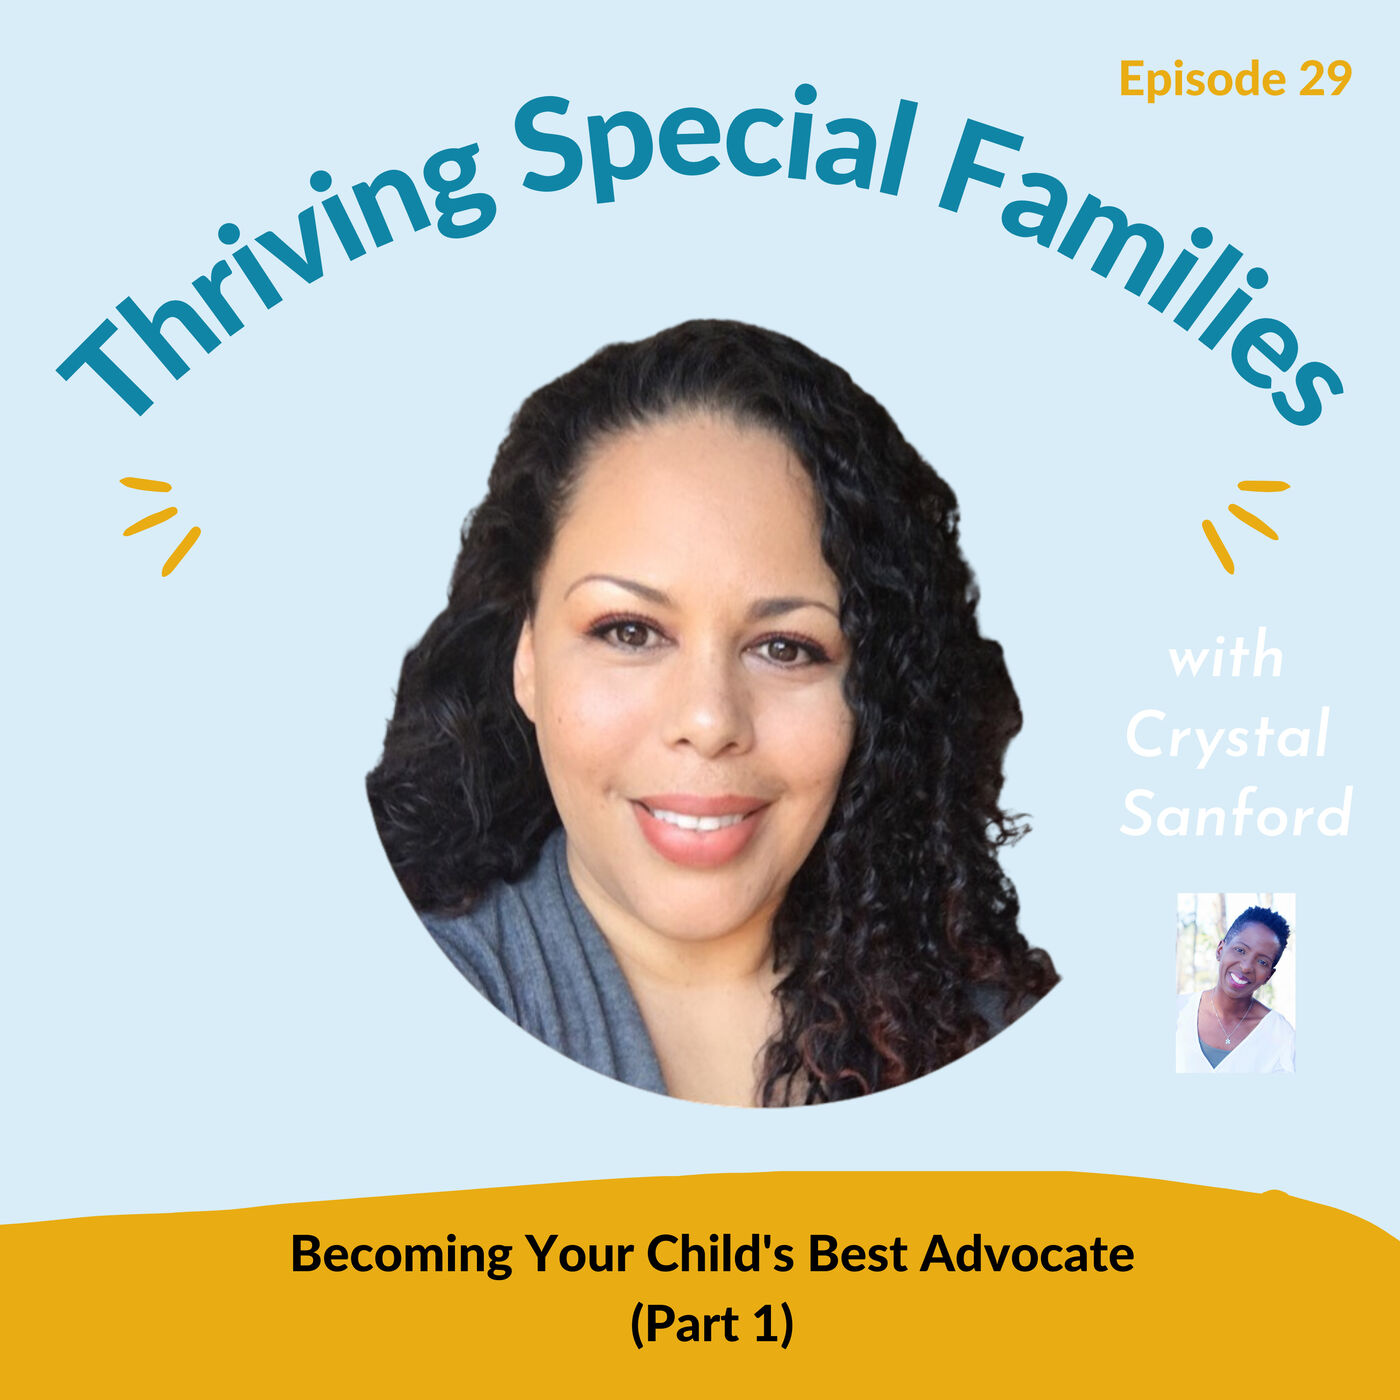 Becoming Your Child's Best Advocate (Part 1)